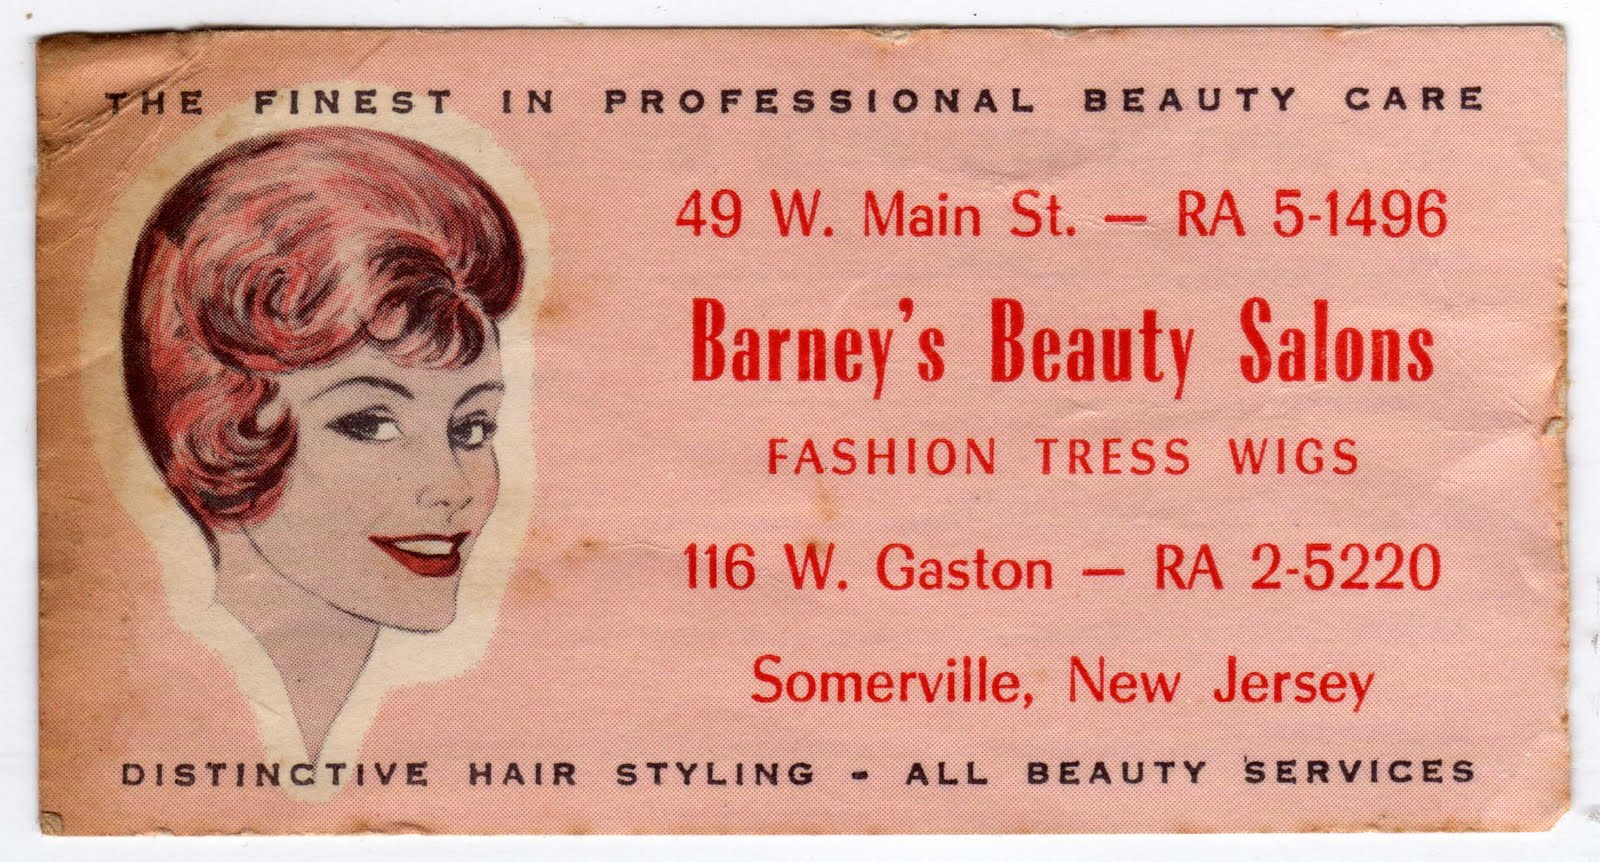 Fashion Nail Beauty Spa Elizabeth Nj: Papergreat: Business Card From Old Beauty Salon In New Jersey